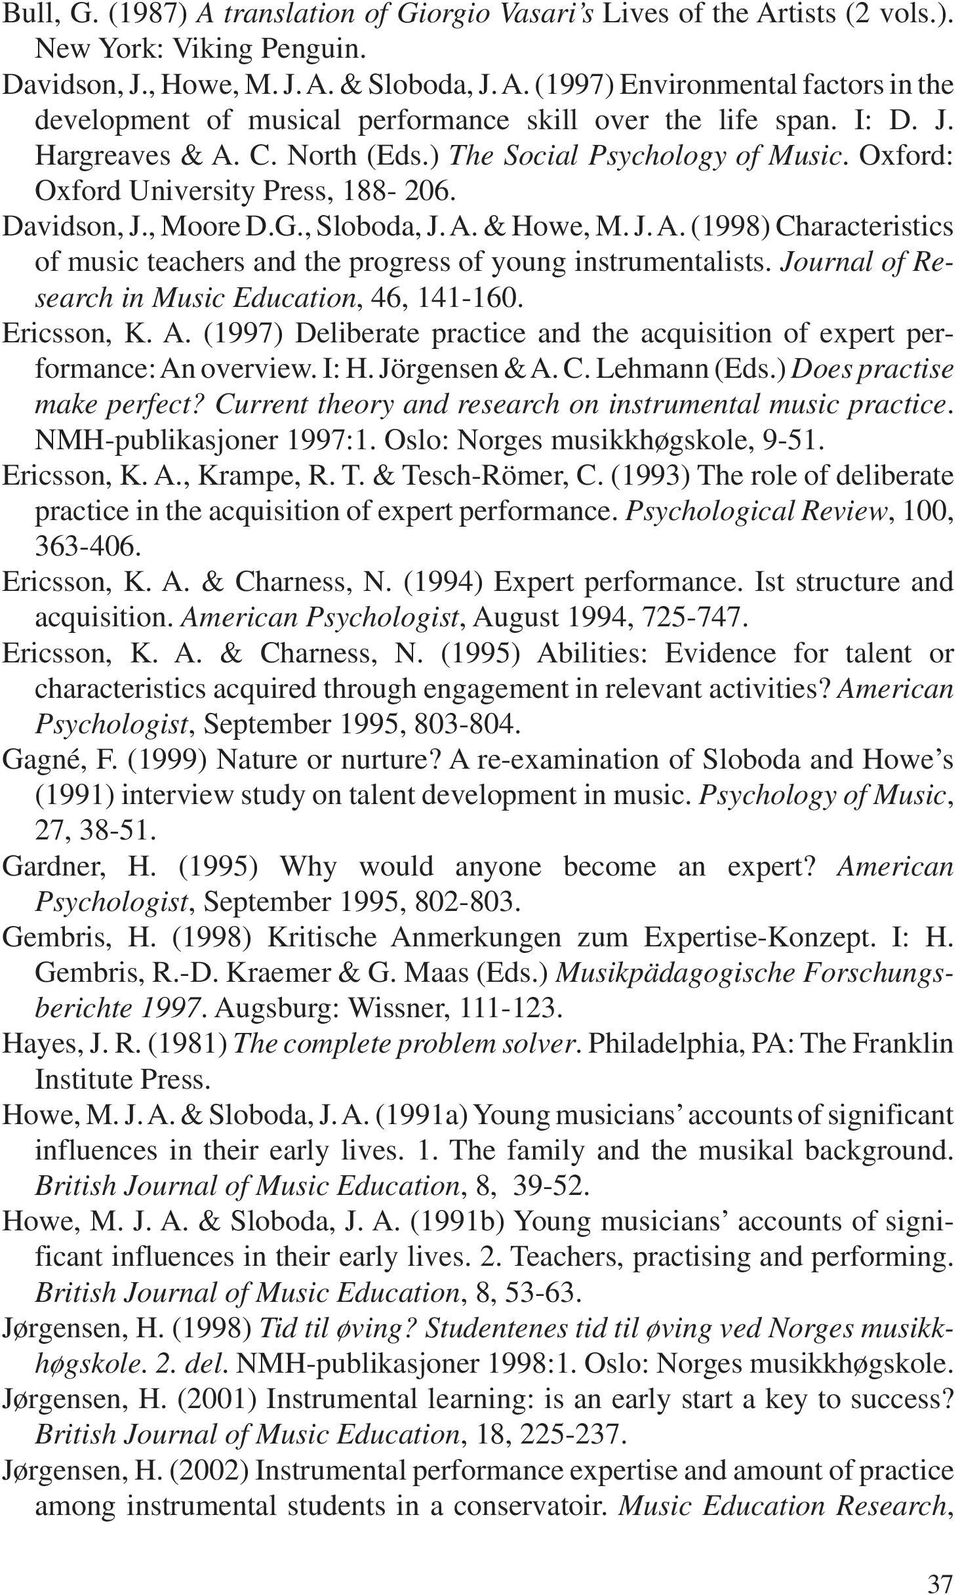 Journal of Research in Music Education, 46, 141-160. Ericsson, K. A. (1997) Deliberate practice and the acquisition of expert performance: An overview. I: H. Jörgensen & A. C. Lehmann (Eds.